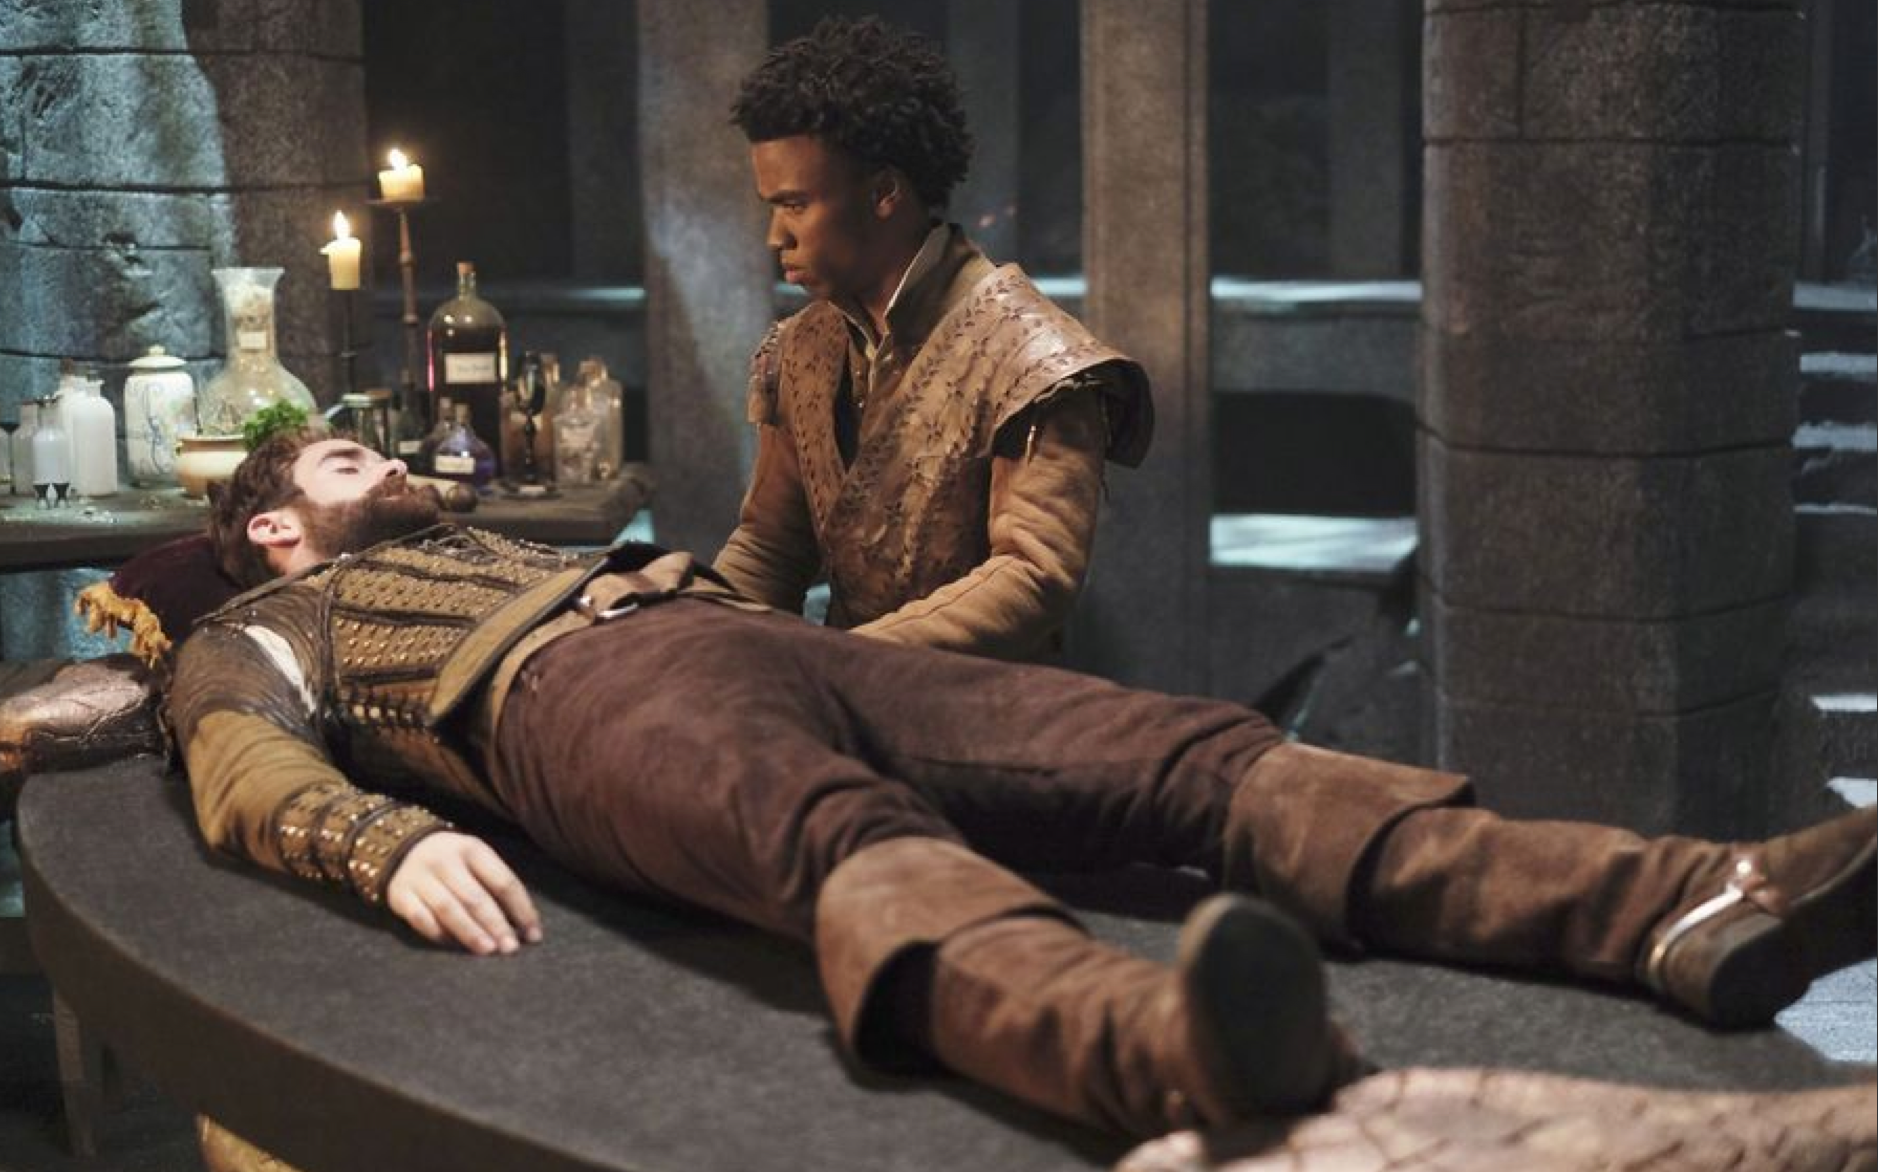 JOSHUA SASSE and LUKE YOUNGBLOOD in Galavant